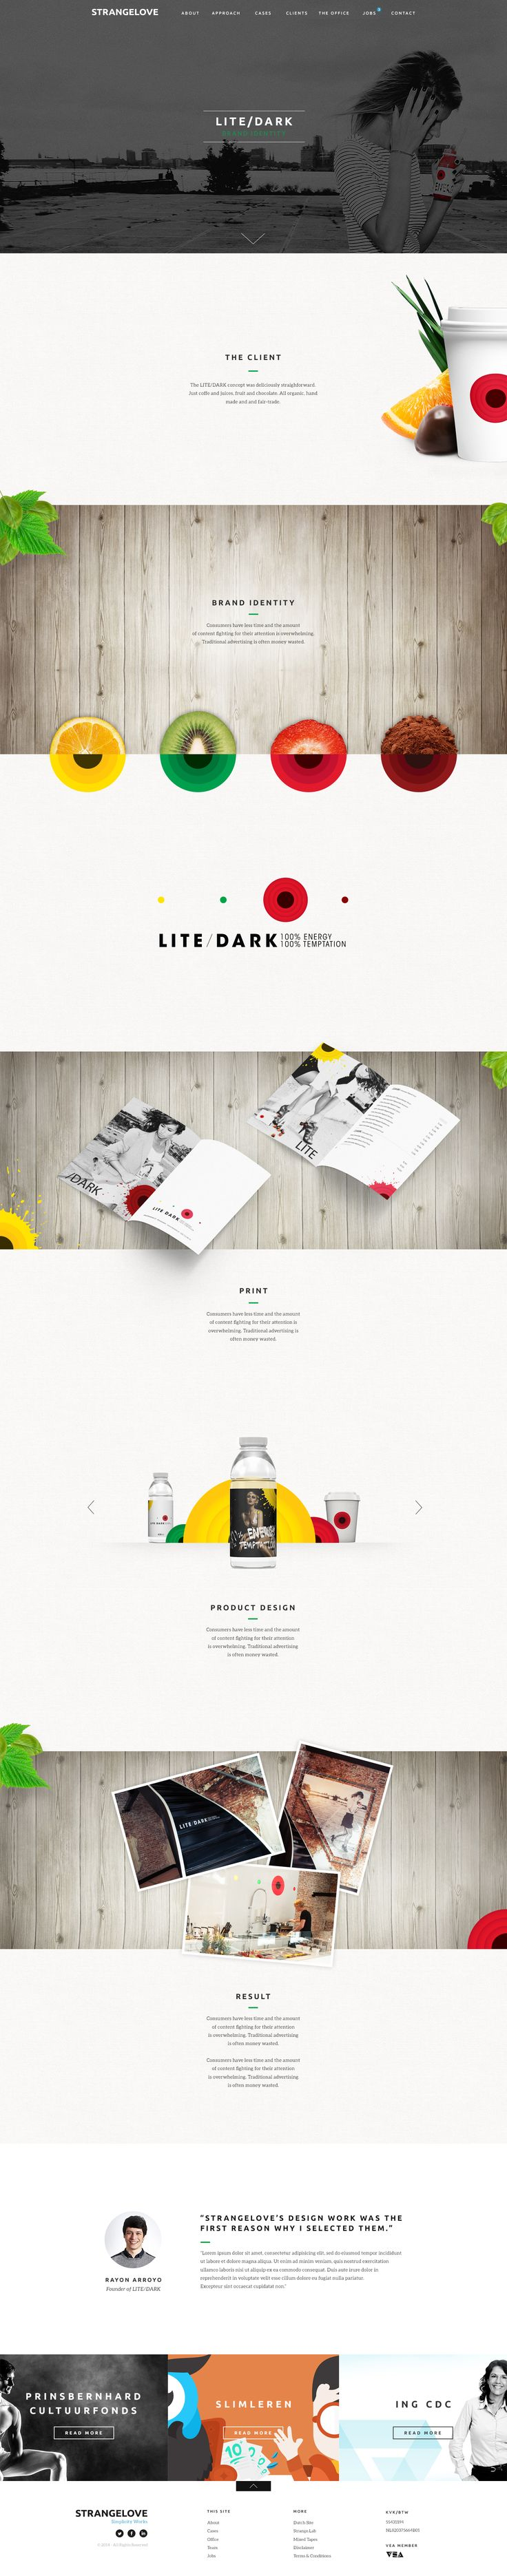 Textures and flat graphics.   Unique Web Design, Strange Love @hohous #WebDesign #Design (http://www.pinterest.com/aldenchong/)